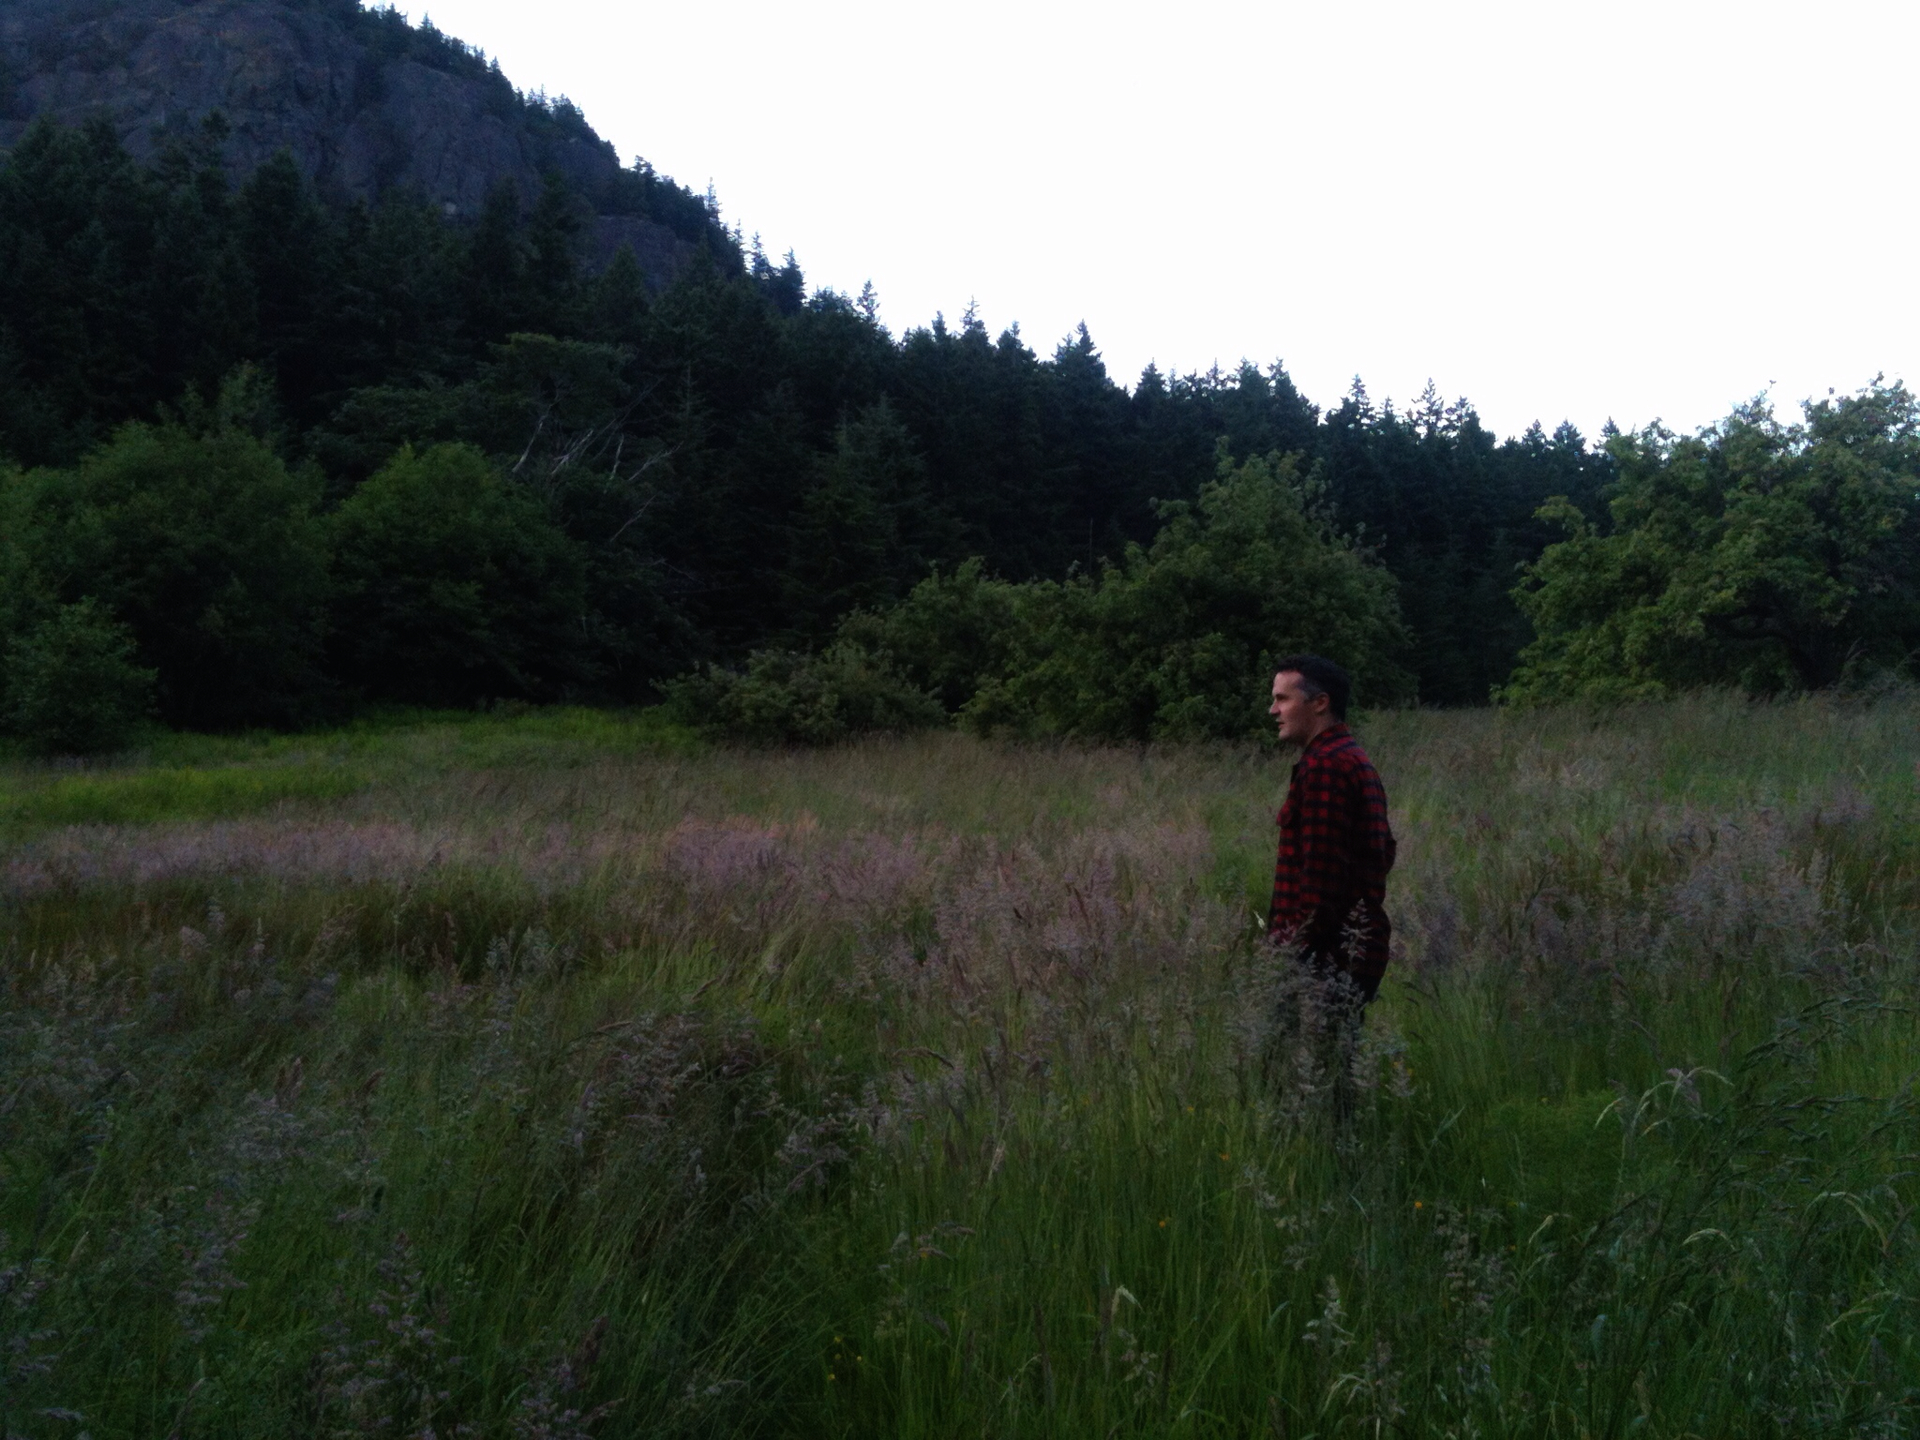 Death is Real: Mount Eerie and the Art of Expressing 'Emptiness' through Songwriting